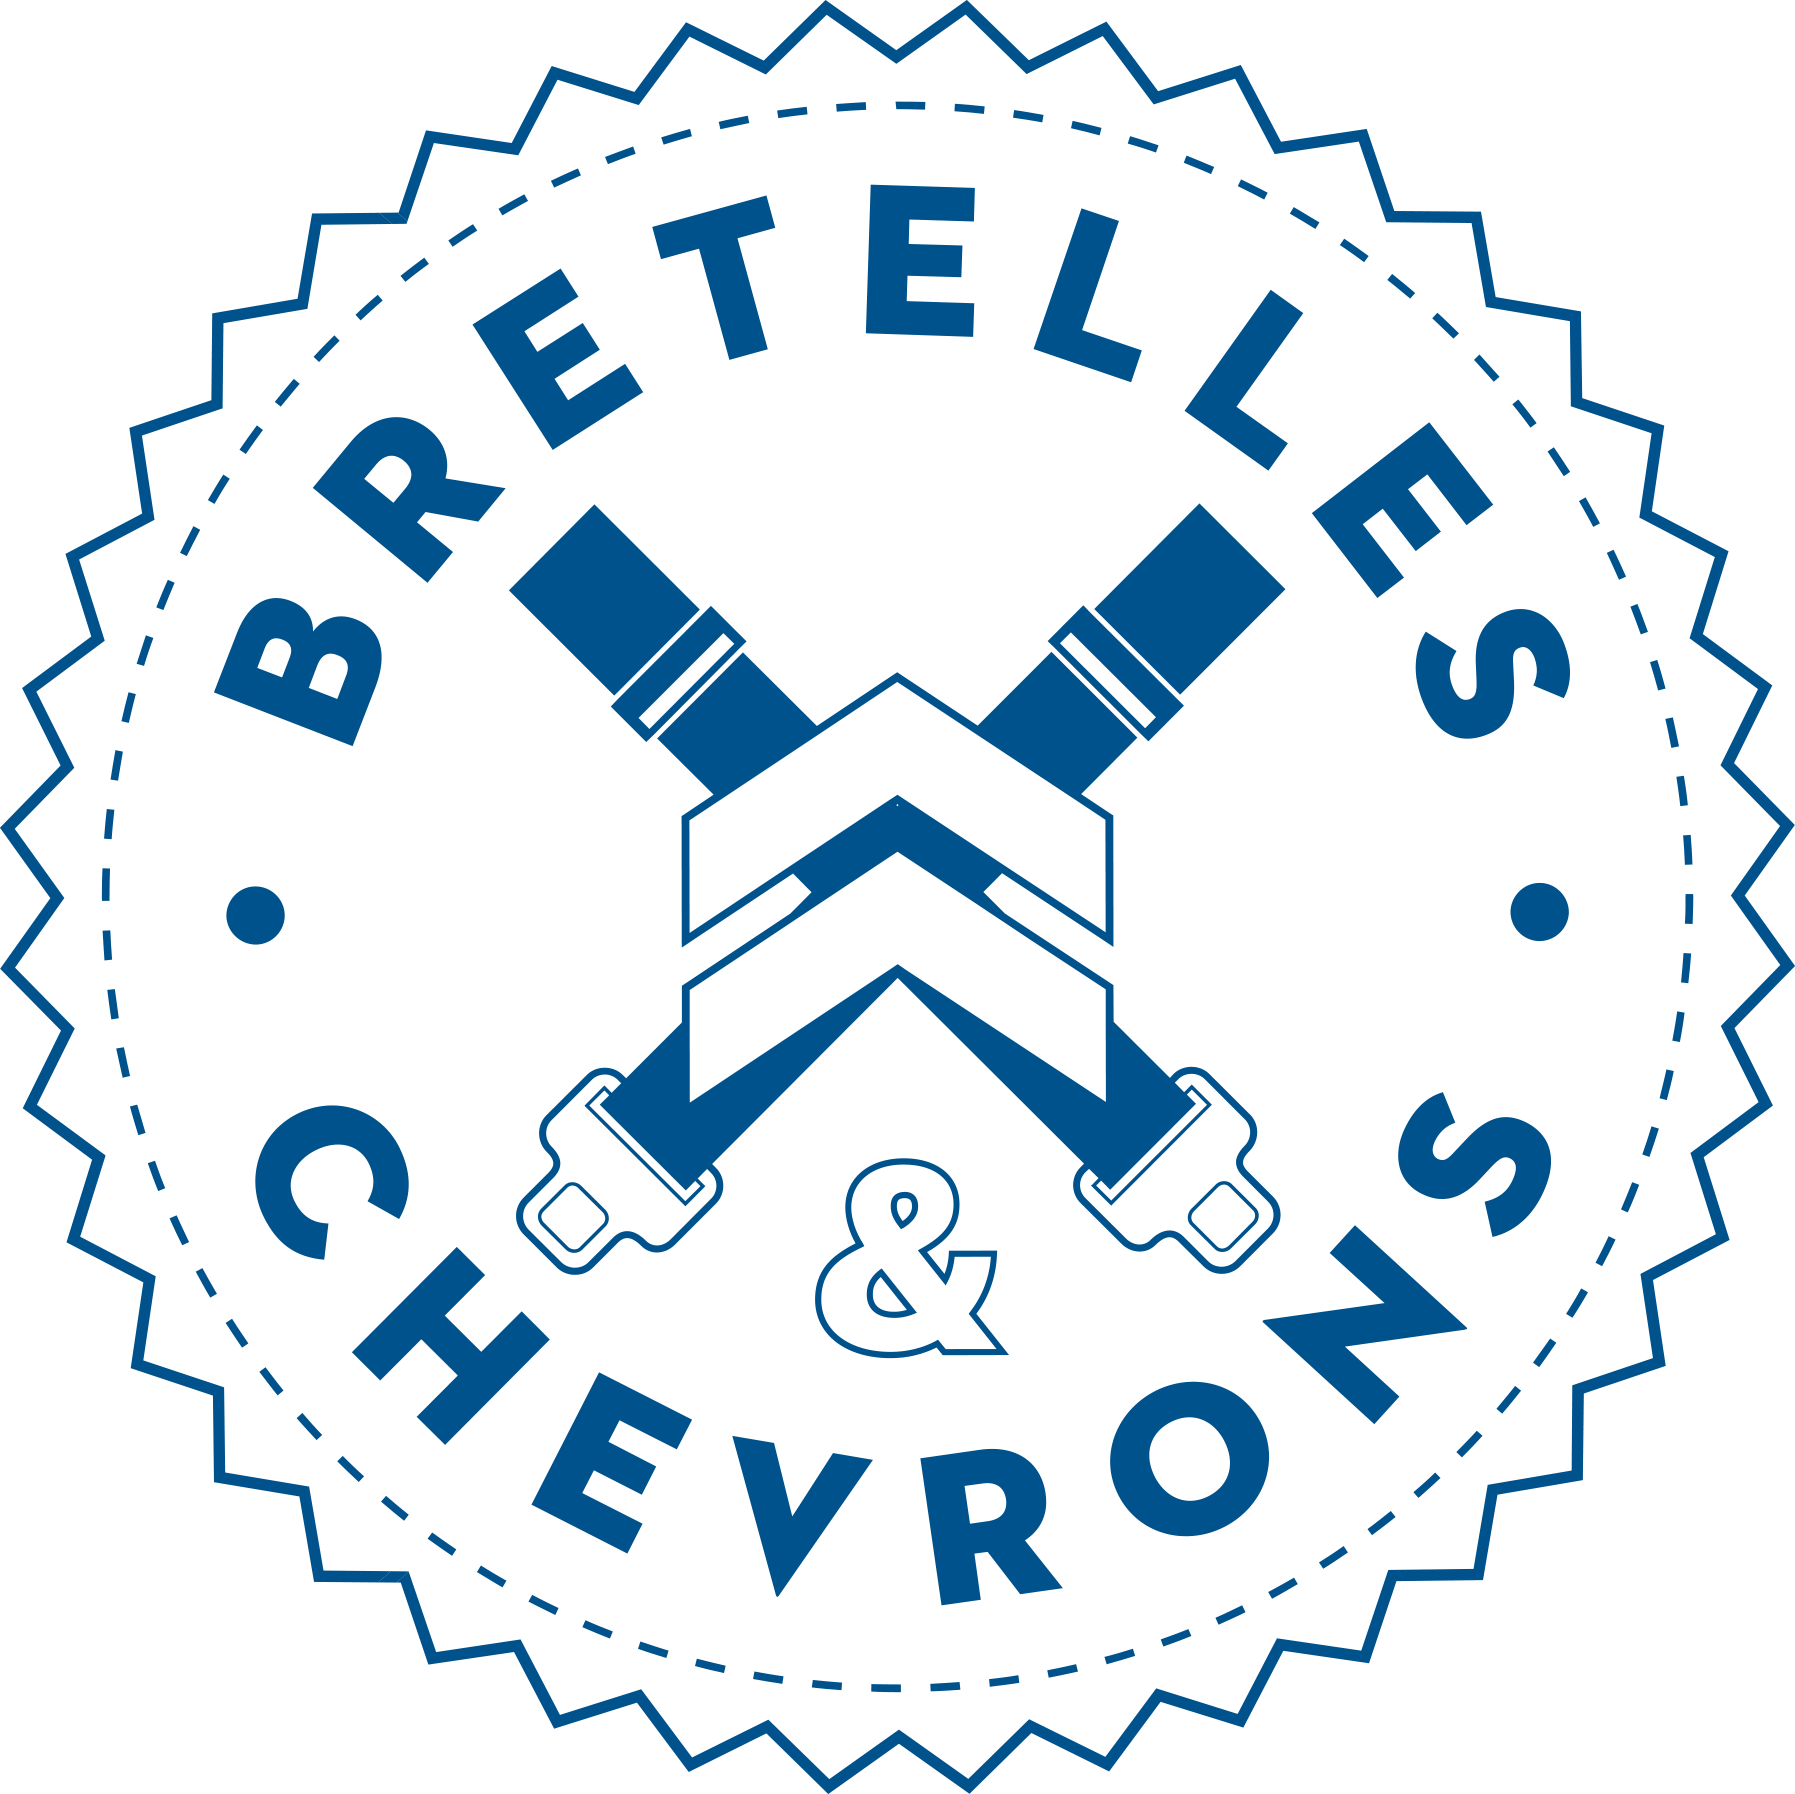 Bretelle Chevrons Logo